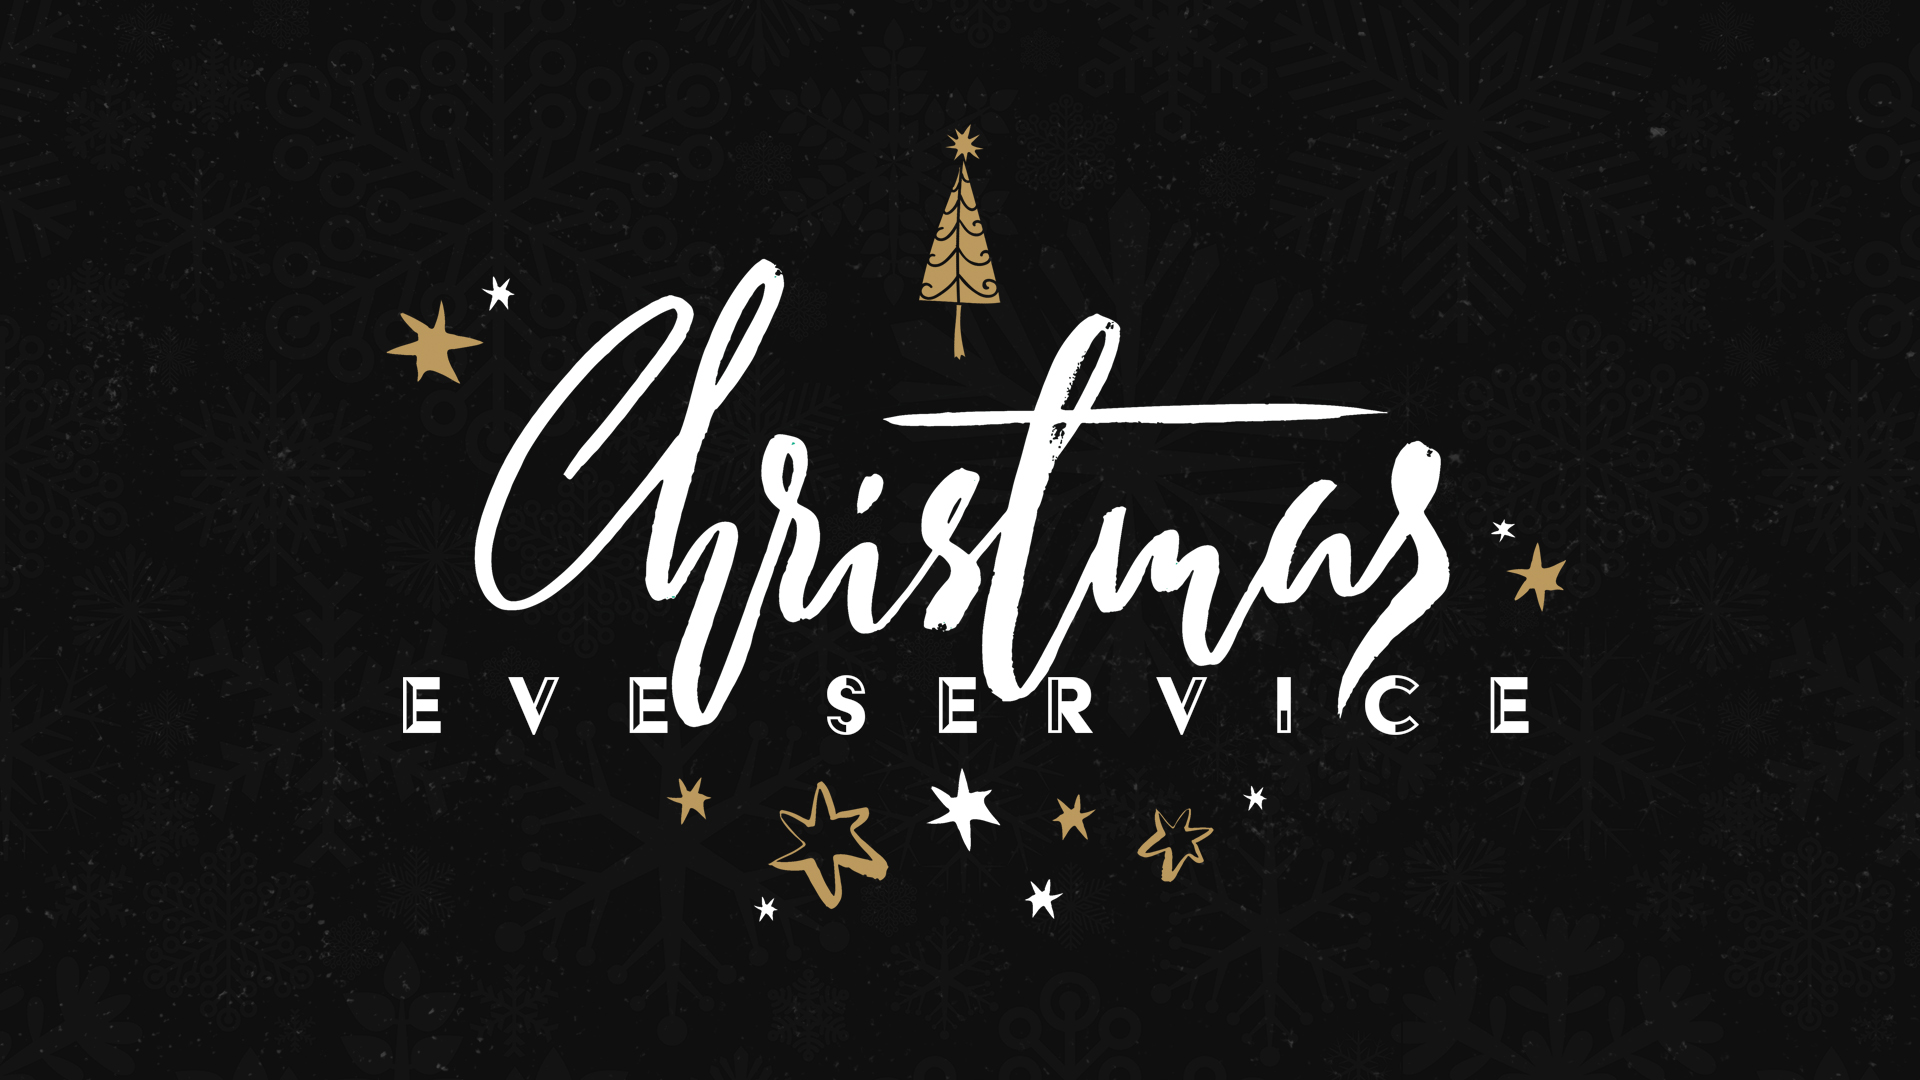 Christmas-eve-service_title slide.jpg